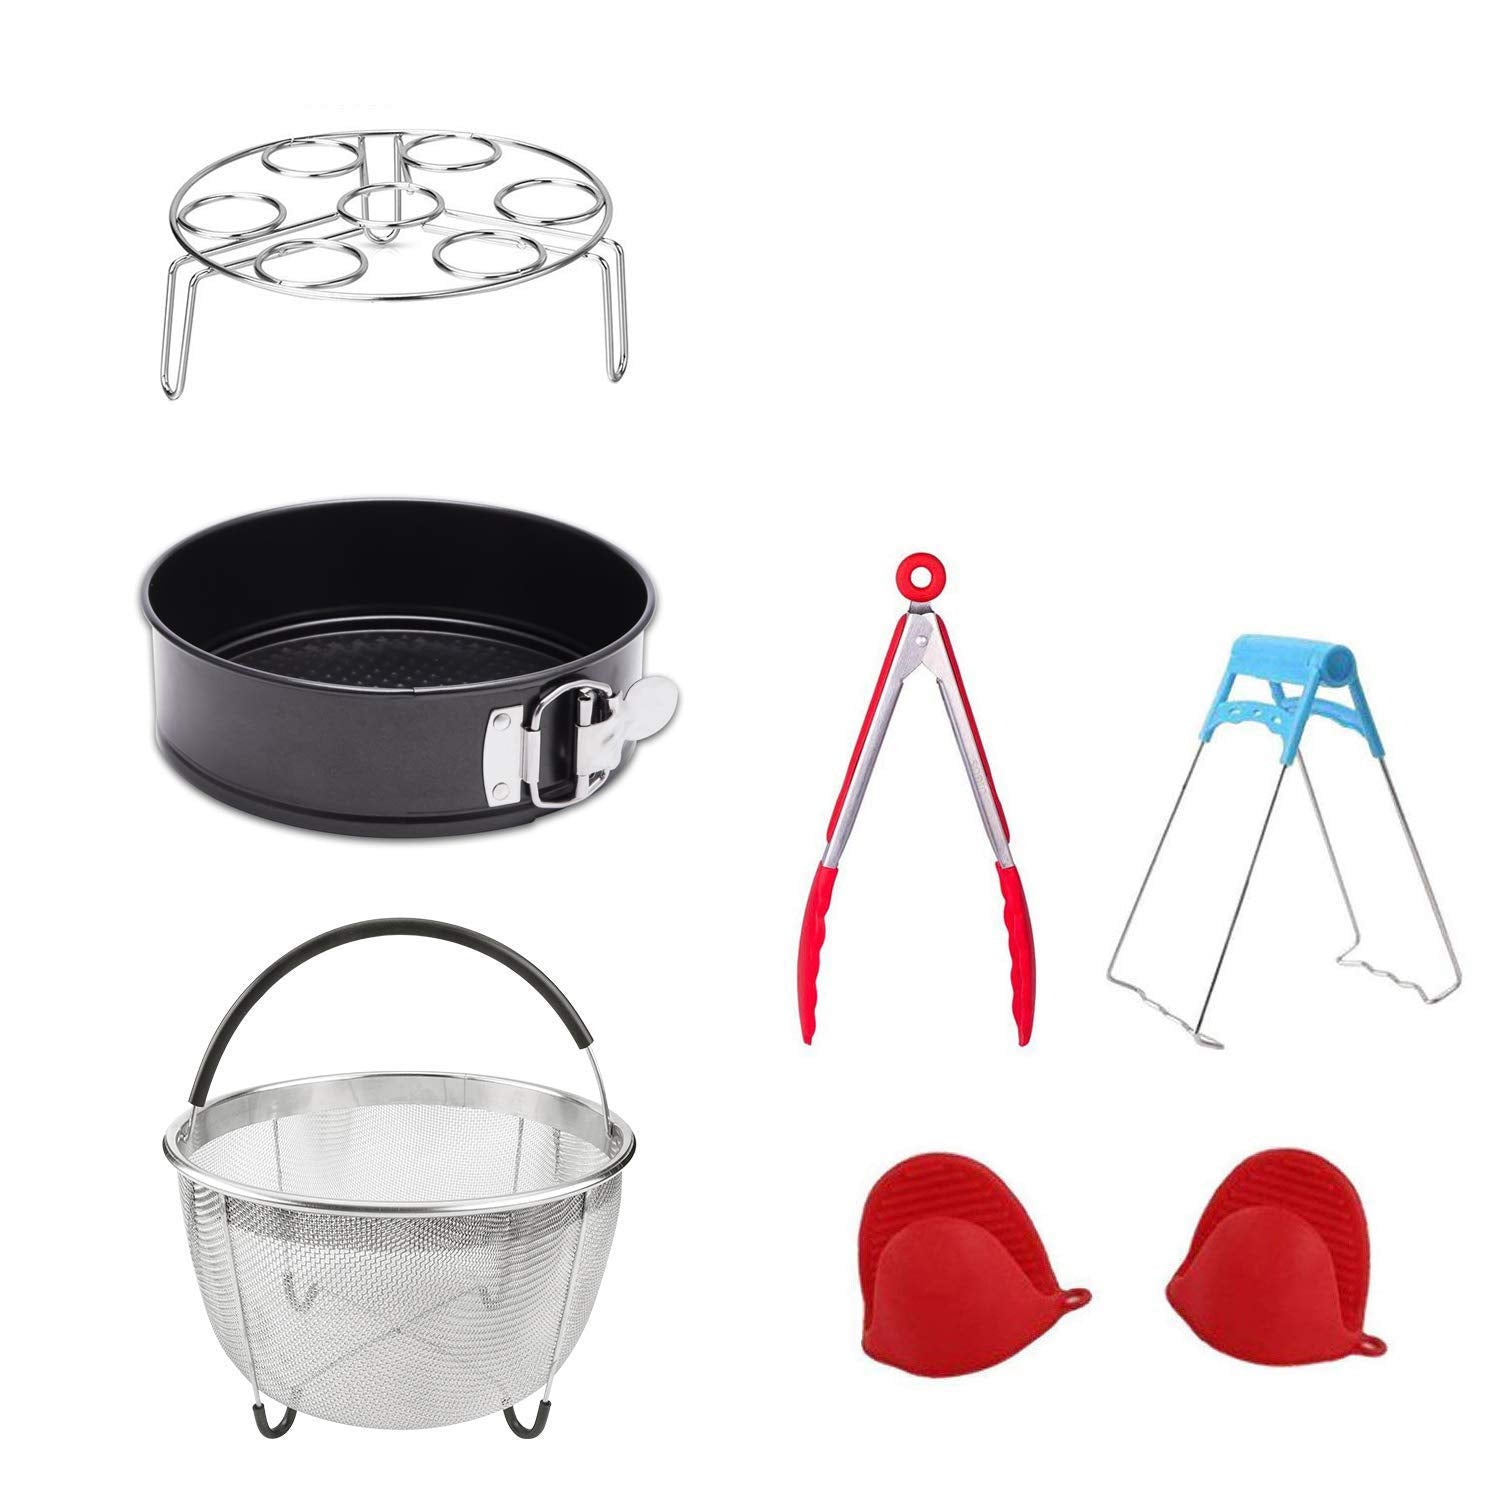 Accessories for Pressure Cooker with Steamer Basket, Egg Steamer Rack, Non-stick Springform Pan,Food Tong, Bowl Dish Clip, 1 Pair Silicone Cooking Pot Mitts 7 Piece